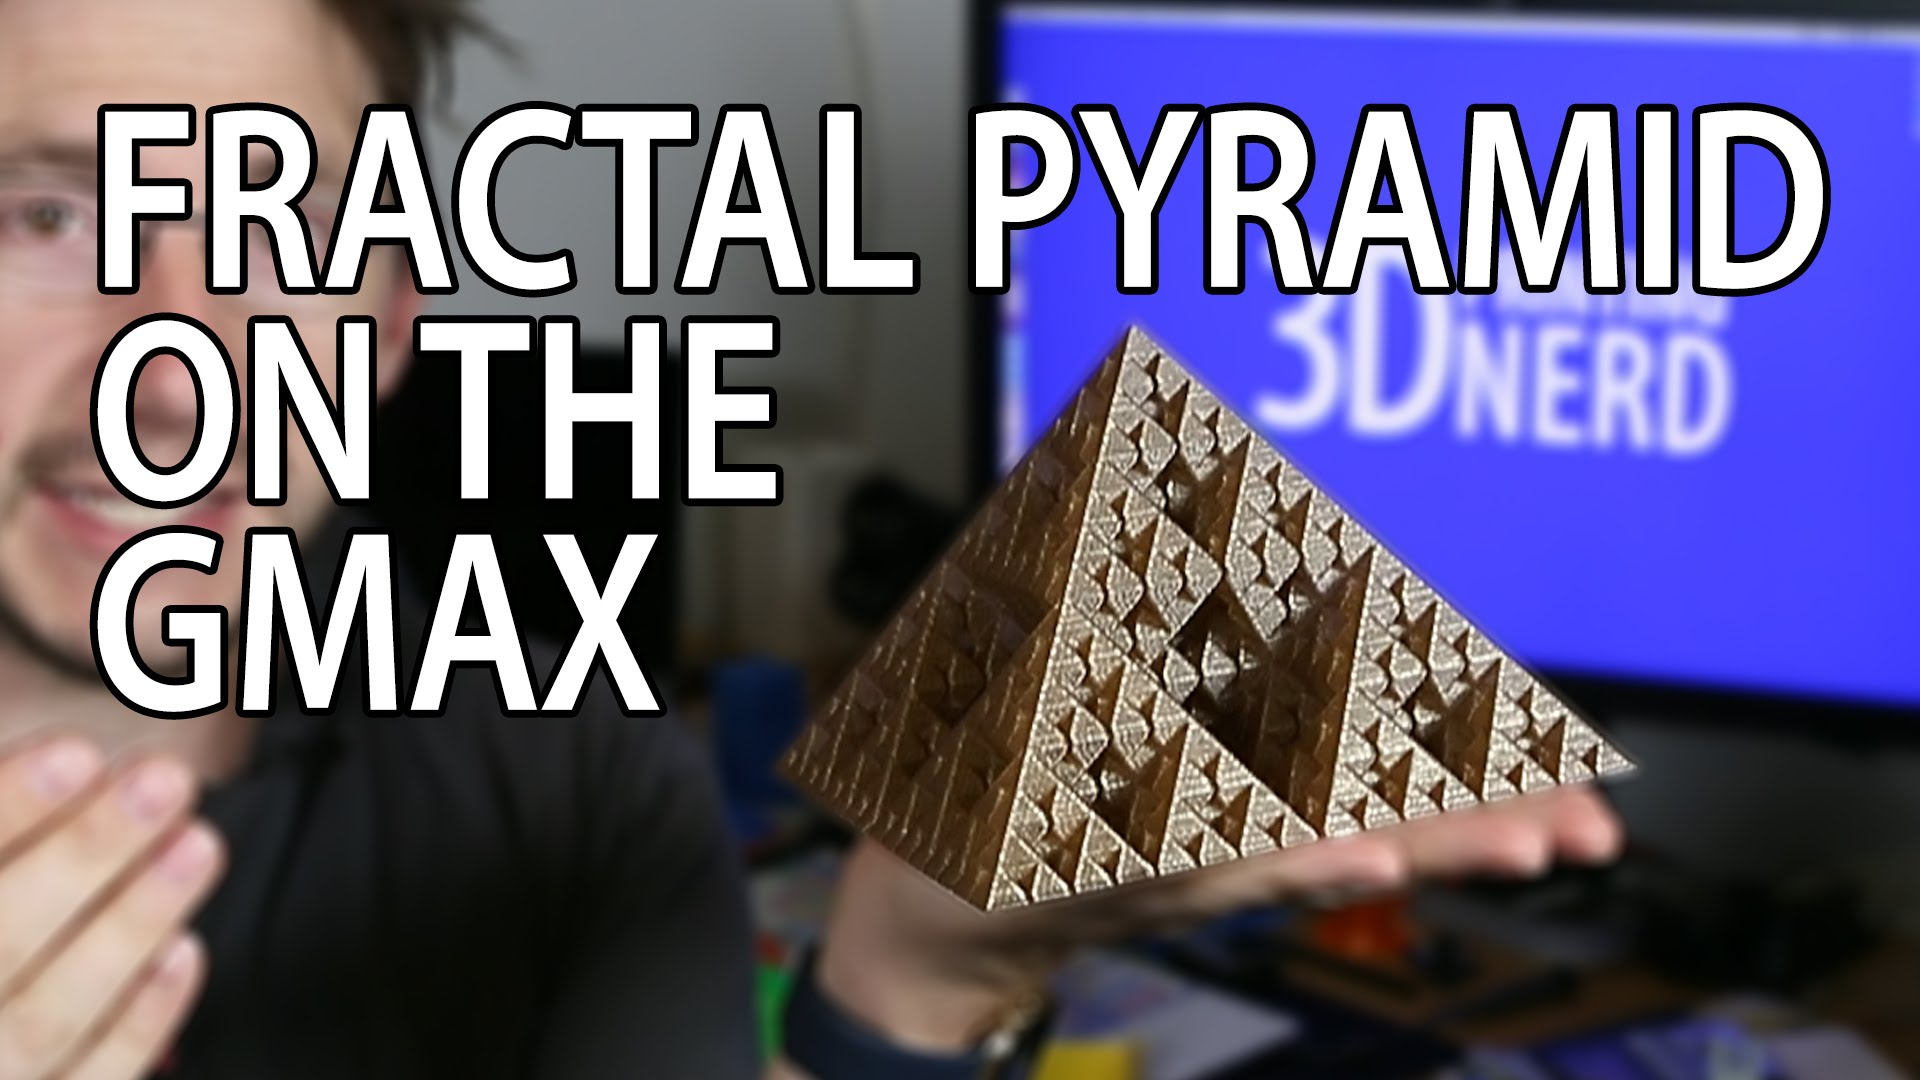 3D Printing: Fractal Pyramid on gMax 1.5XT+ using Proto Pasta PLA